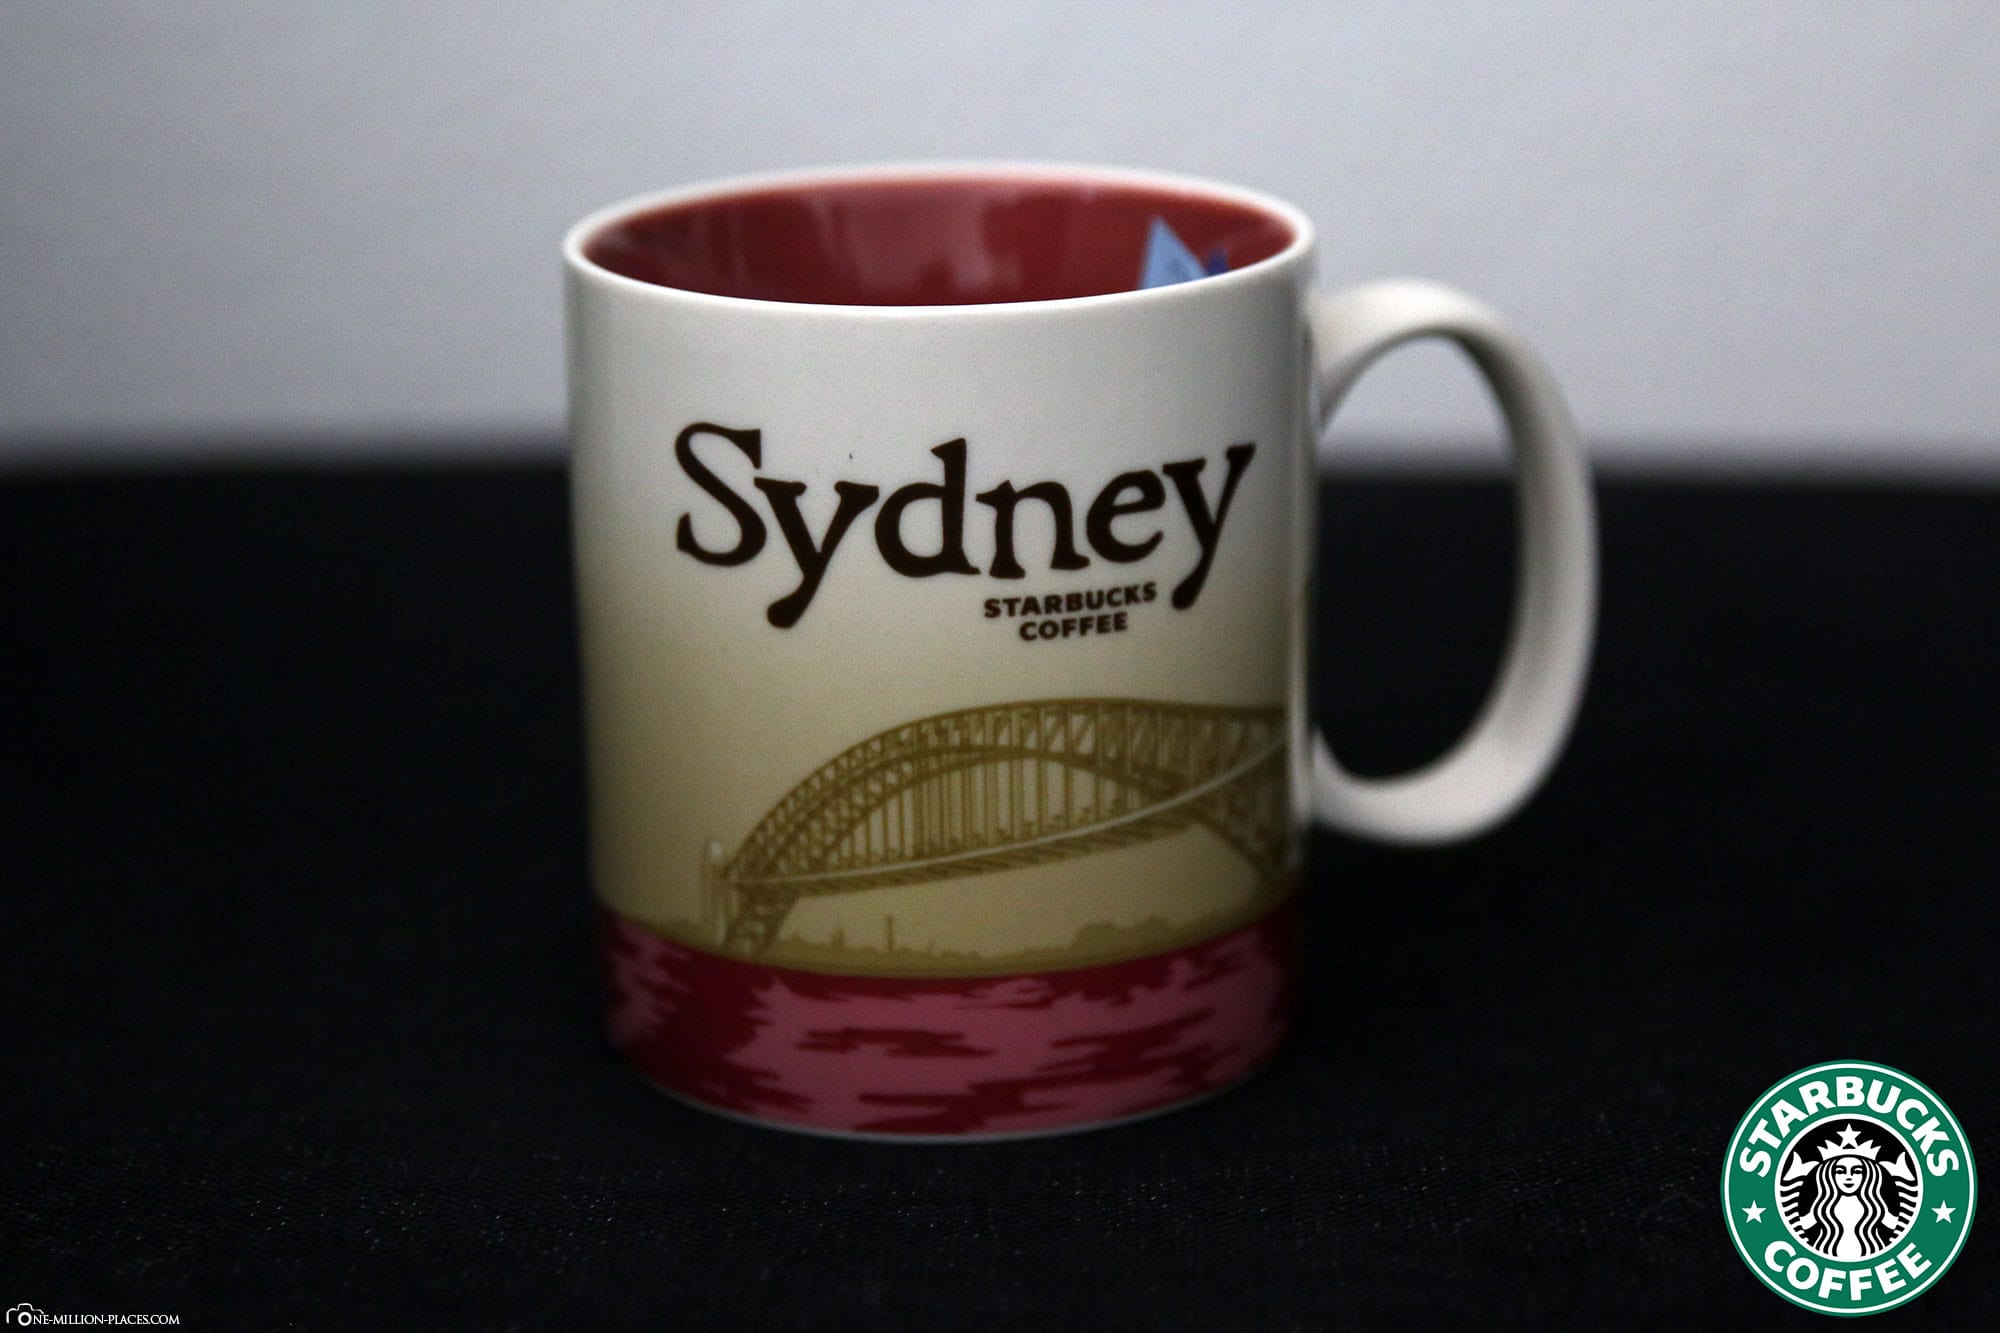 Sydney, Starbucks Cup, Global Icon Series, City Mugs, Collection, Australia, Travelreport